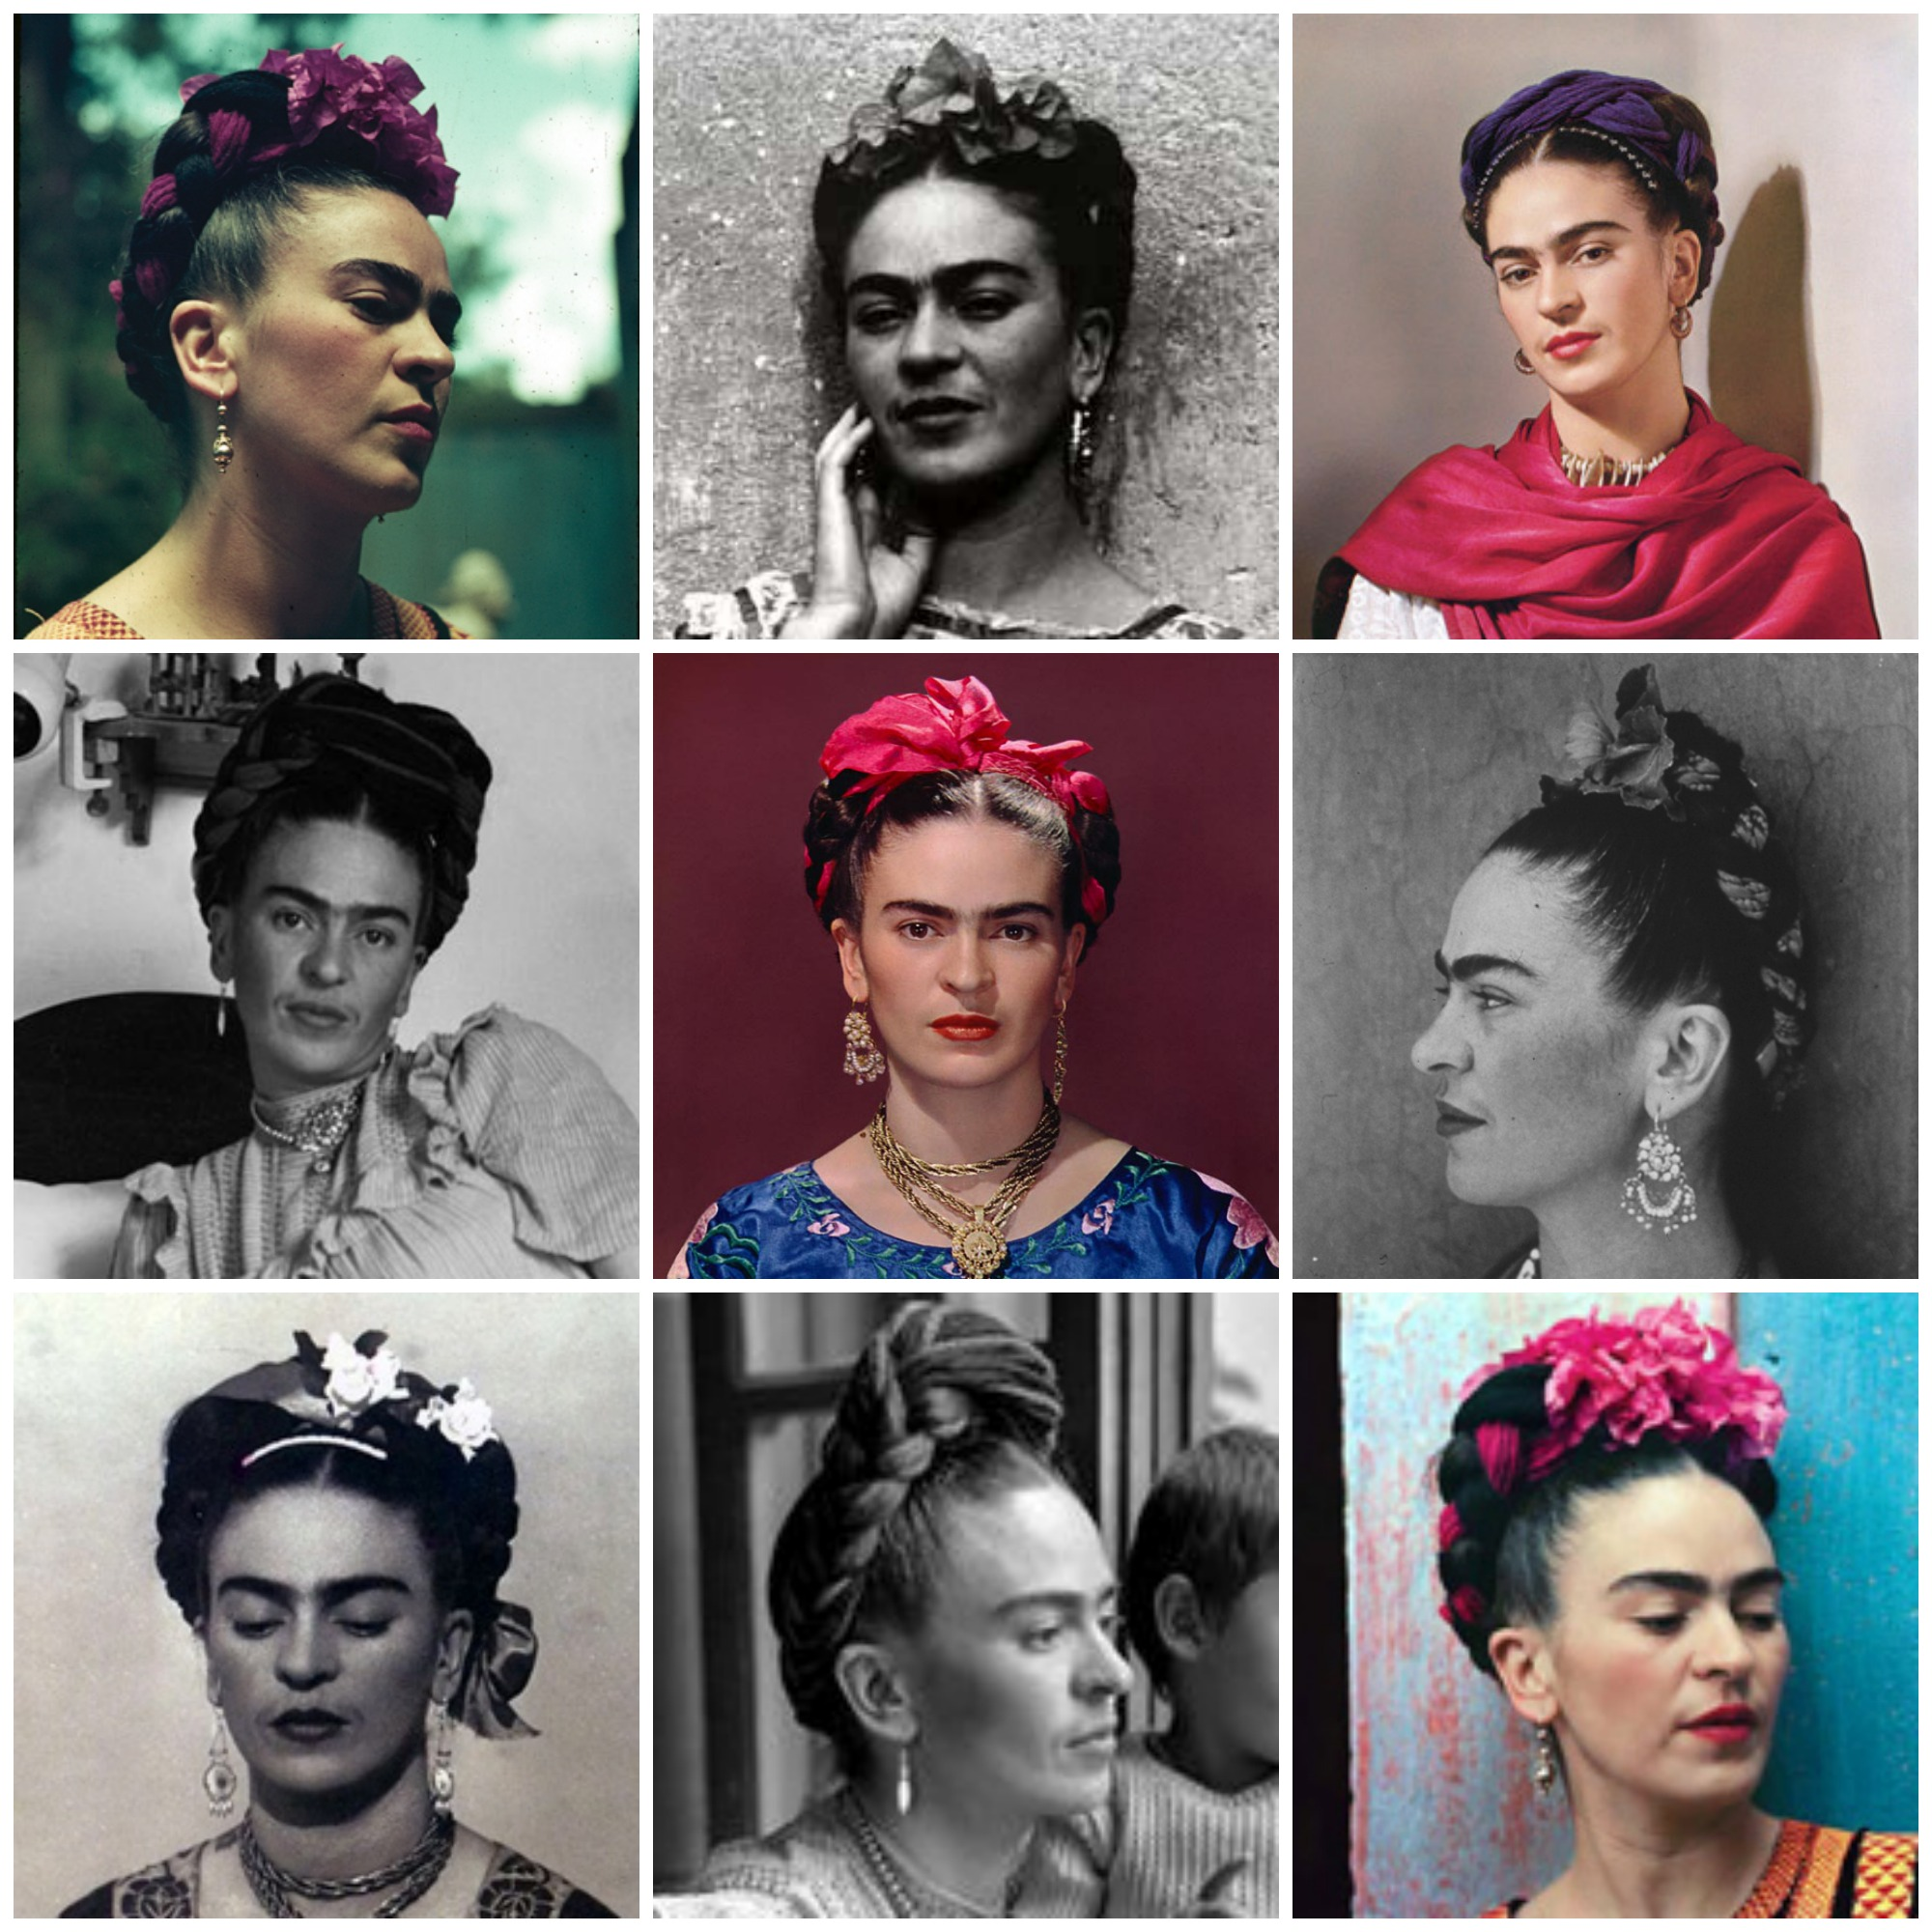 how to frida style braids with t shirt fabric generation t